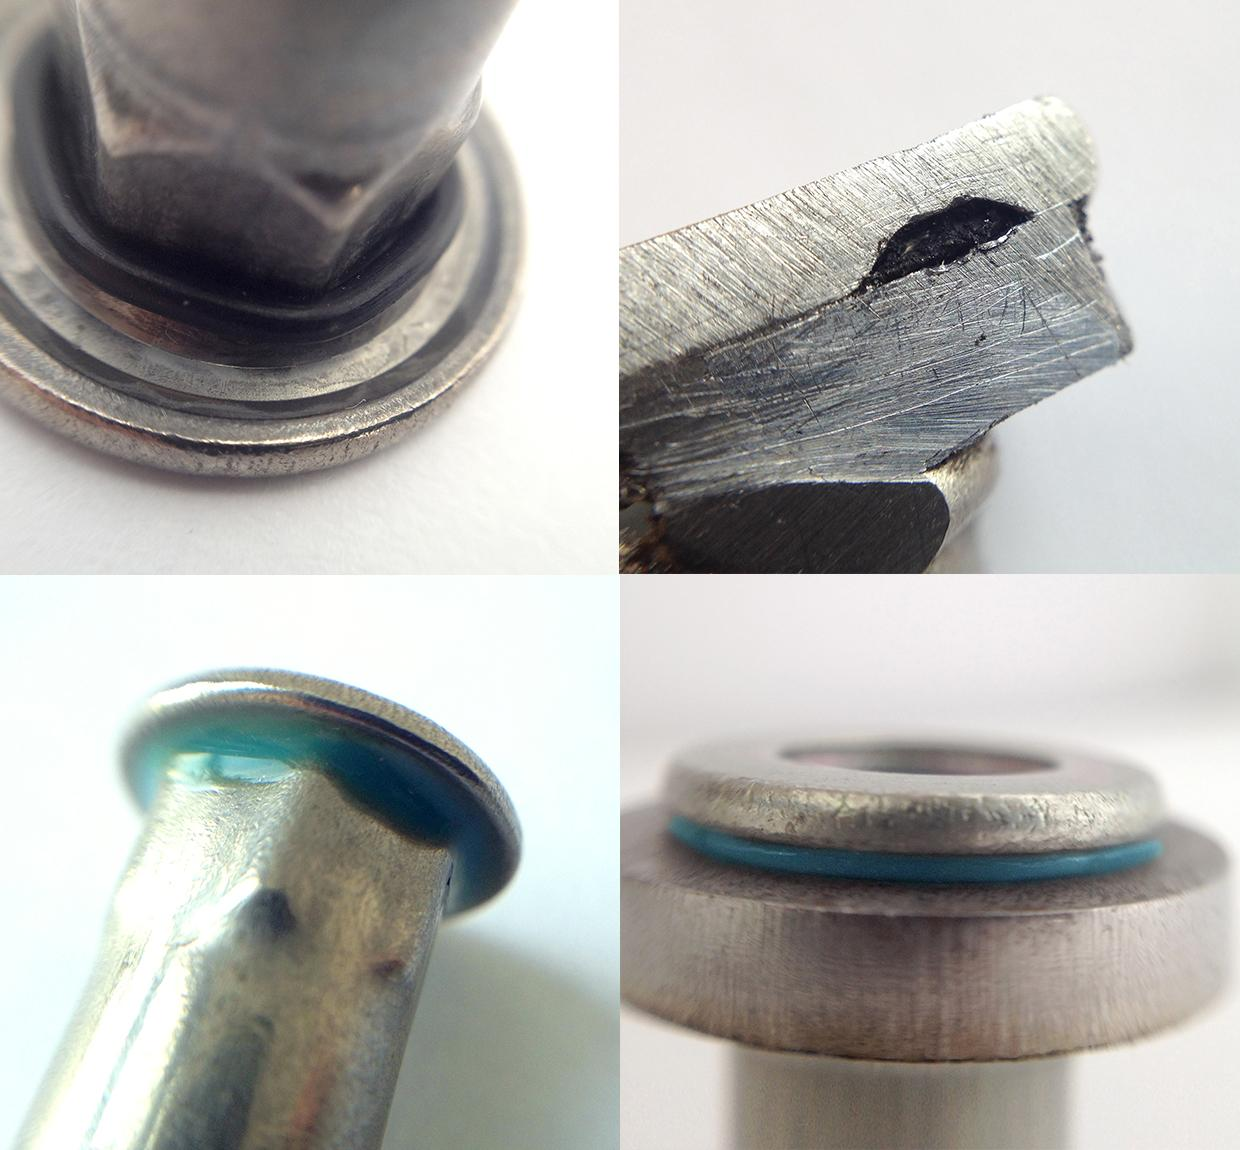 Top left: HX rivet nut head details. Top right: cut off image compressed HX seal after setting. Bottom left: applied under head HDPX seal. Bottom right: robust HDPX seal between matting surfaces